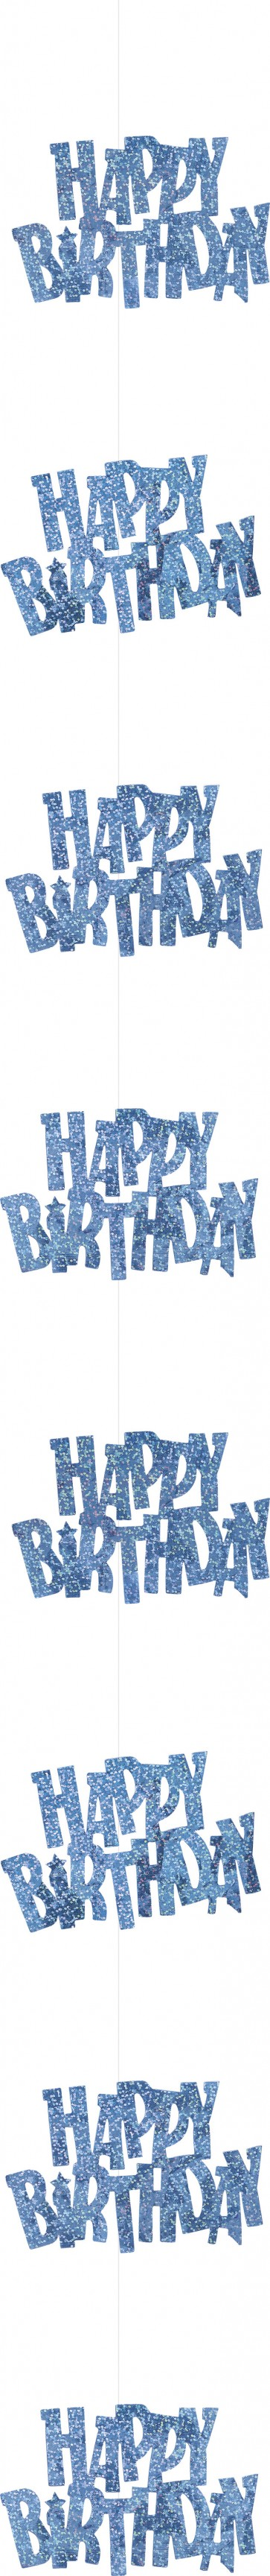 Blue Glitz Happy Birthday Hanging Decorations